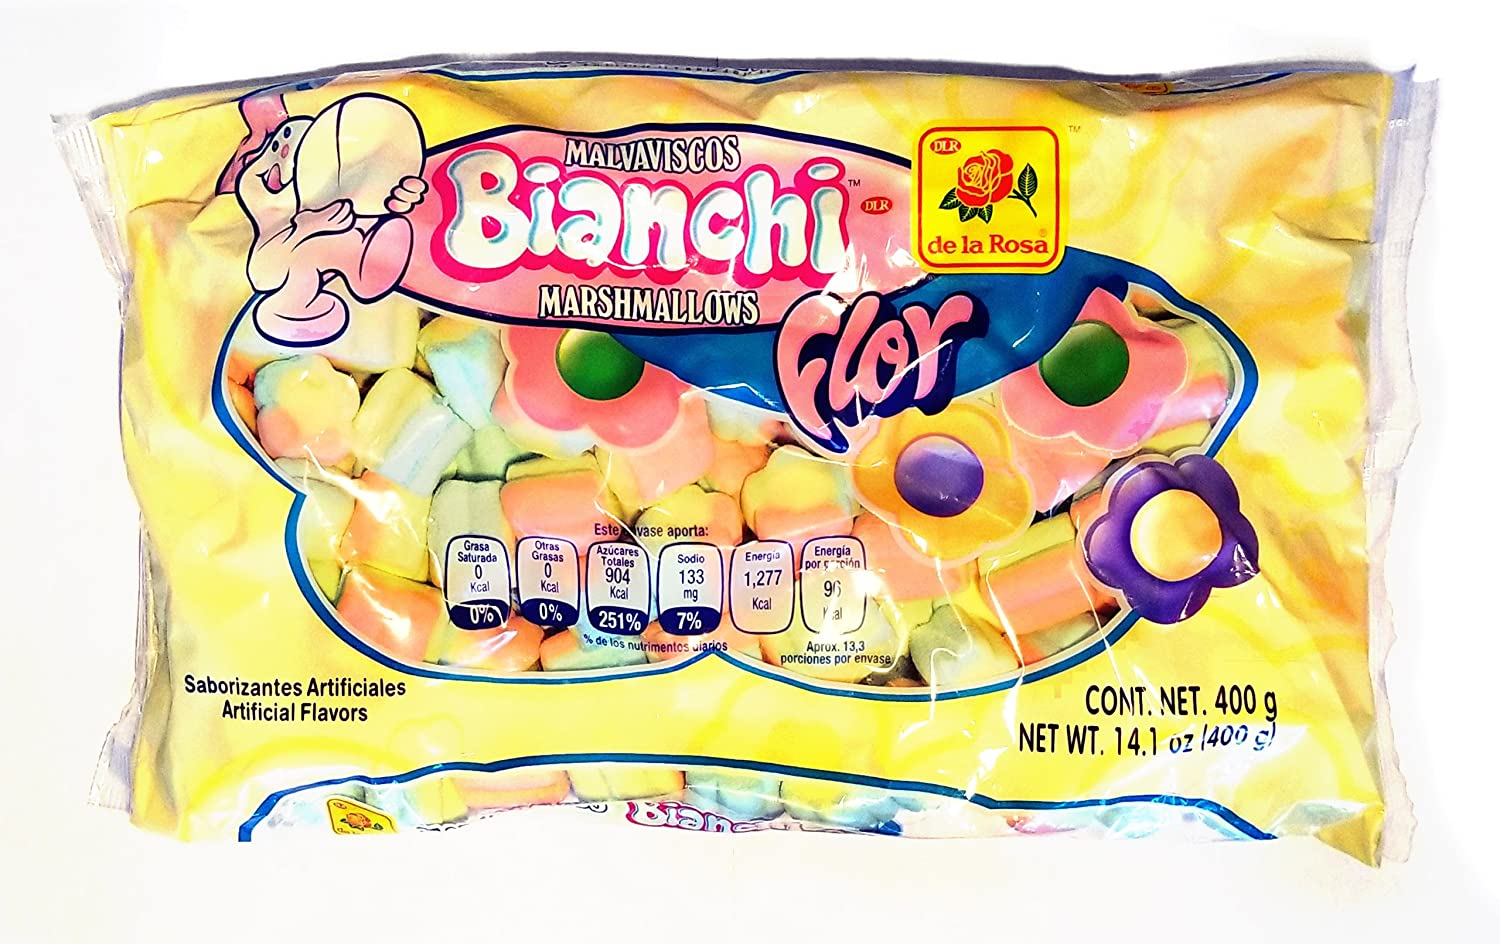 Amazon.com : Bianchi Figure Shape Marshmallows (Mega) : Grocery & Gourmet Food